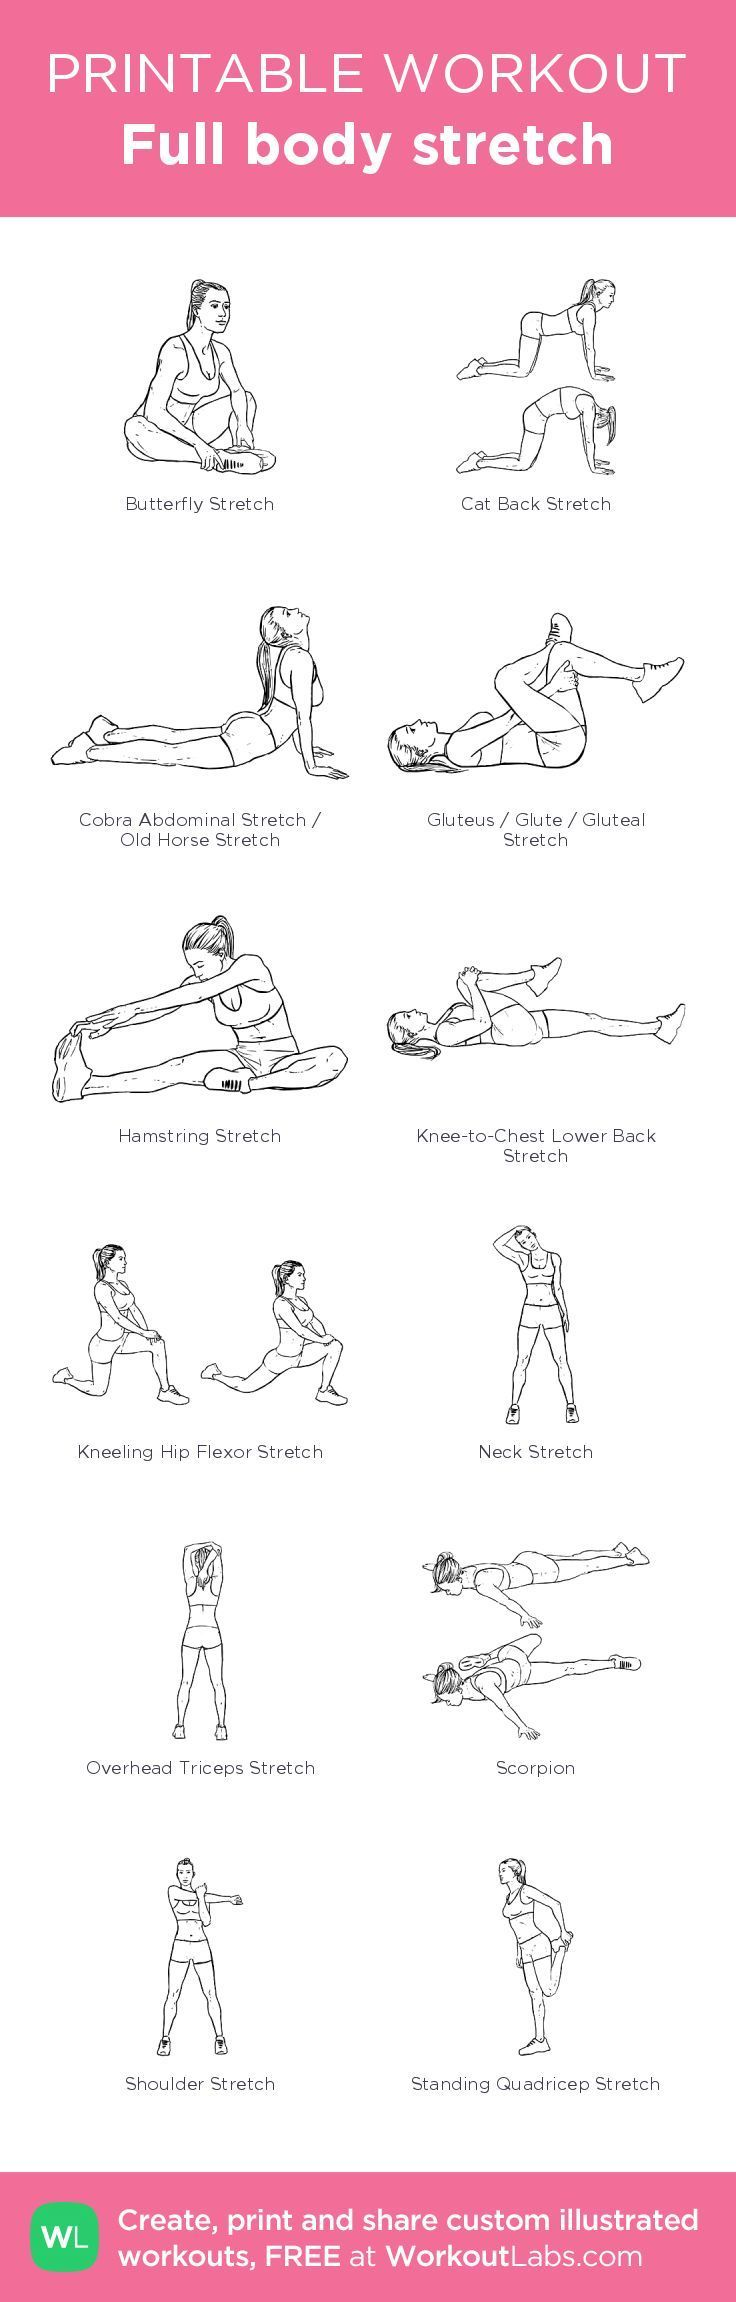 Full body stretch created at WorkoutLabs.com • Click through on mobile or customize and save as PDF at workoutlabs.com/… #mobileworkout #customworkout